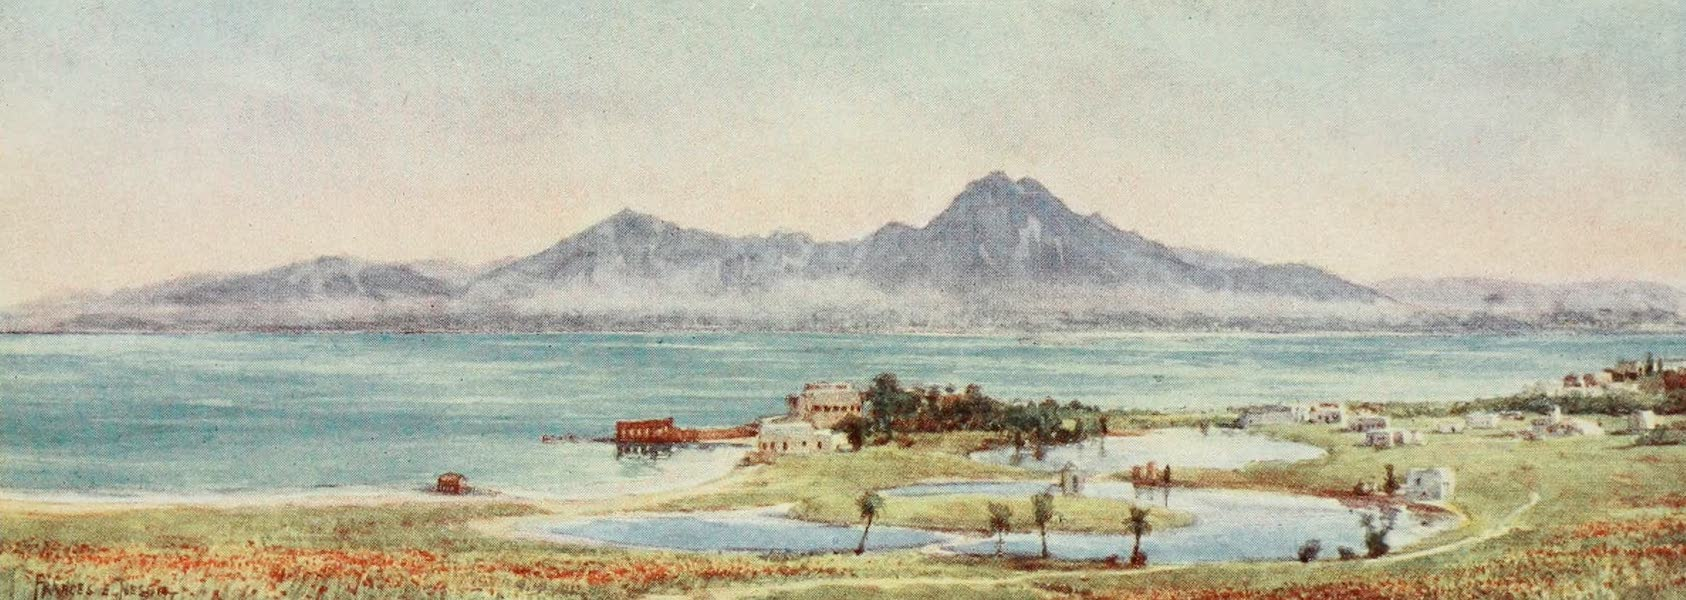 Algeria and Tunis, Painted and Described - The Ancient Ports of Carthage (1906)